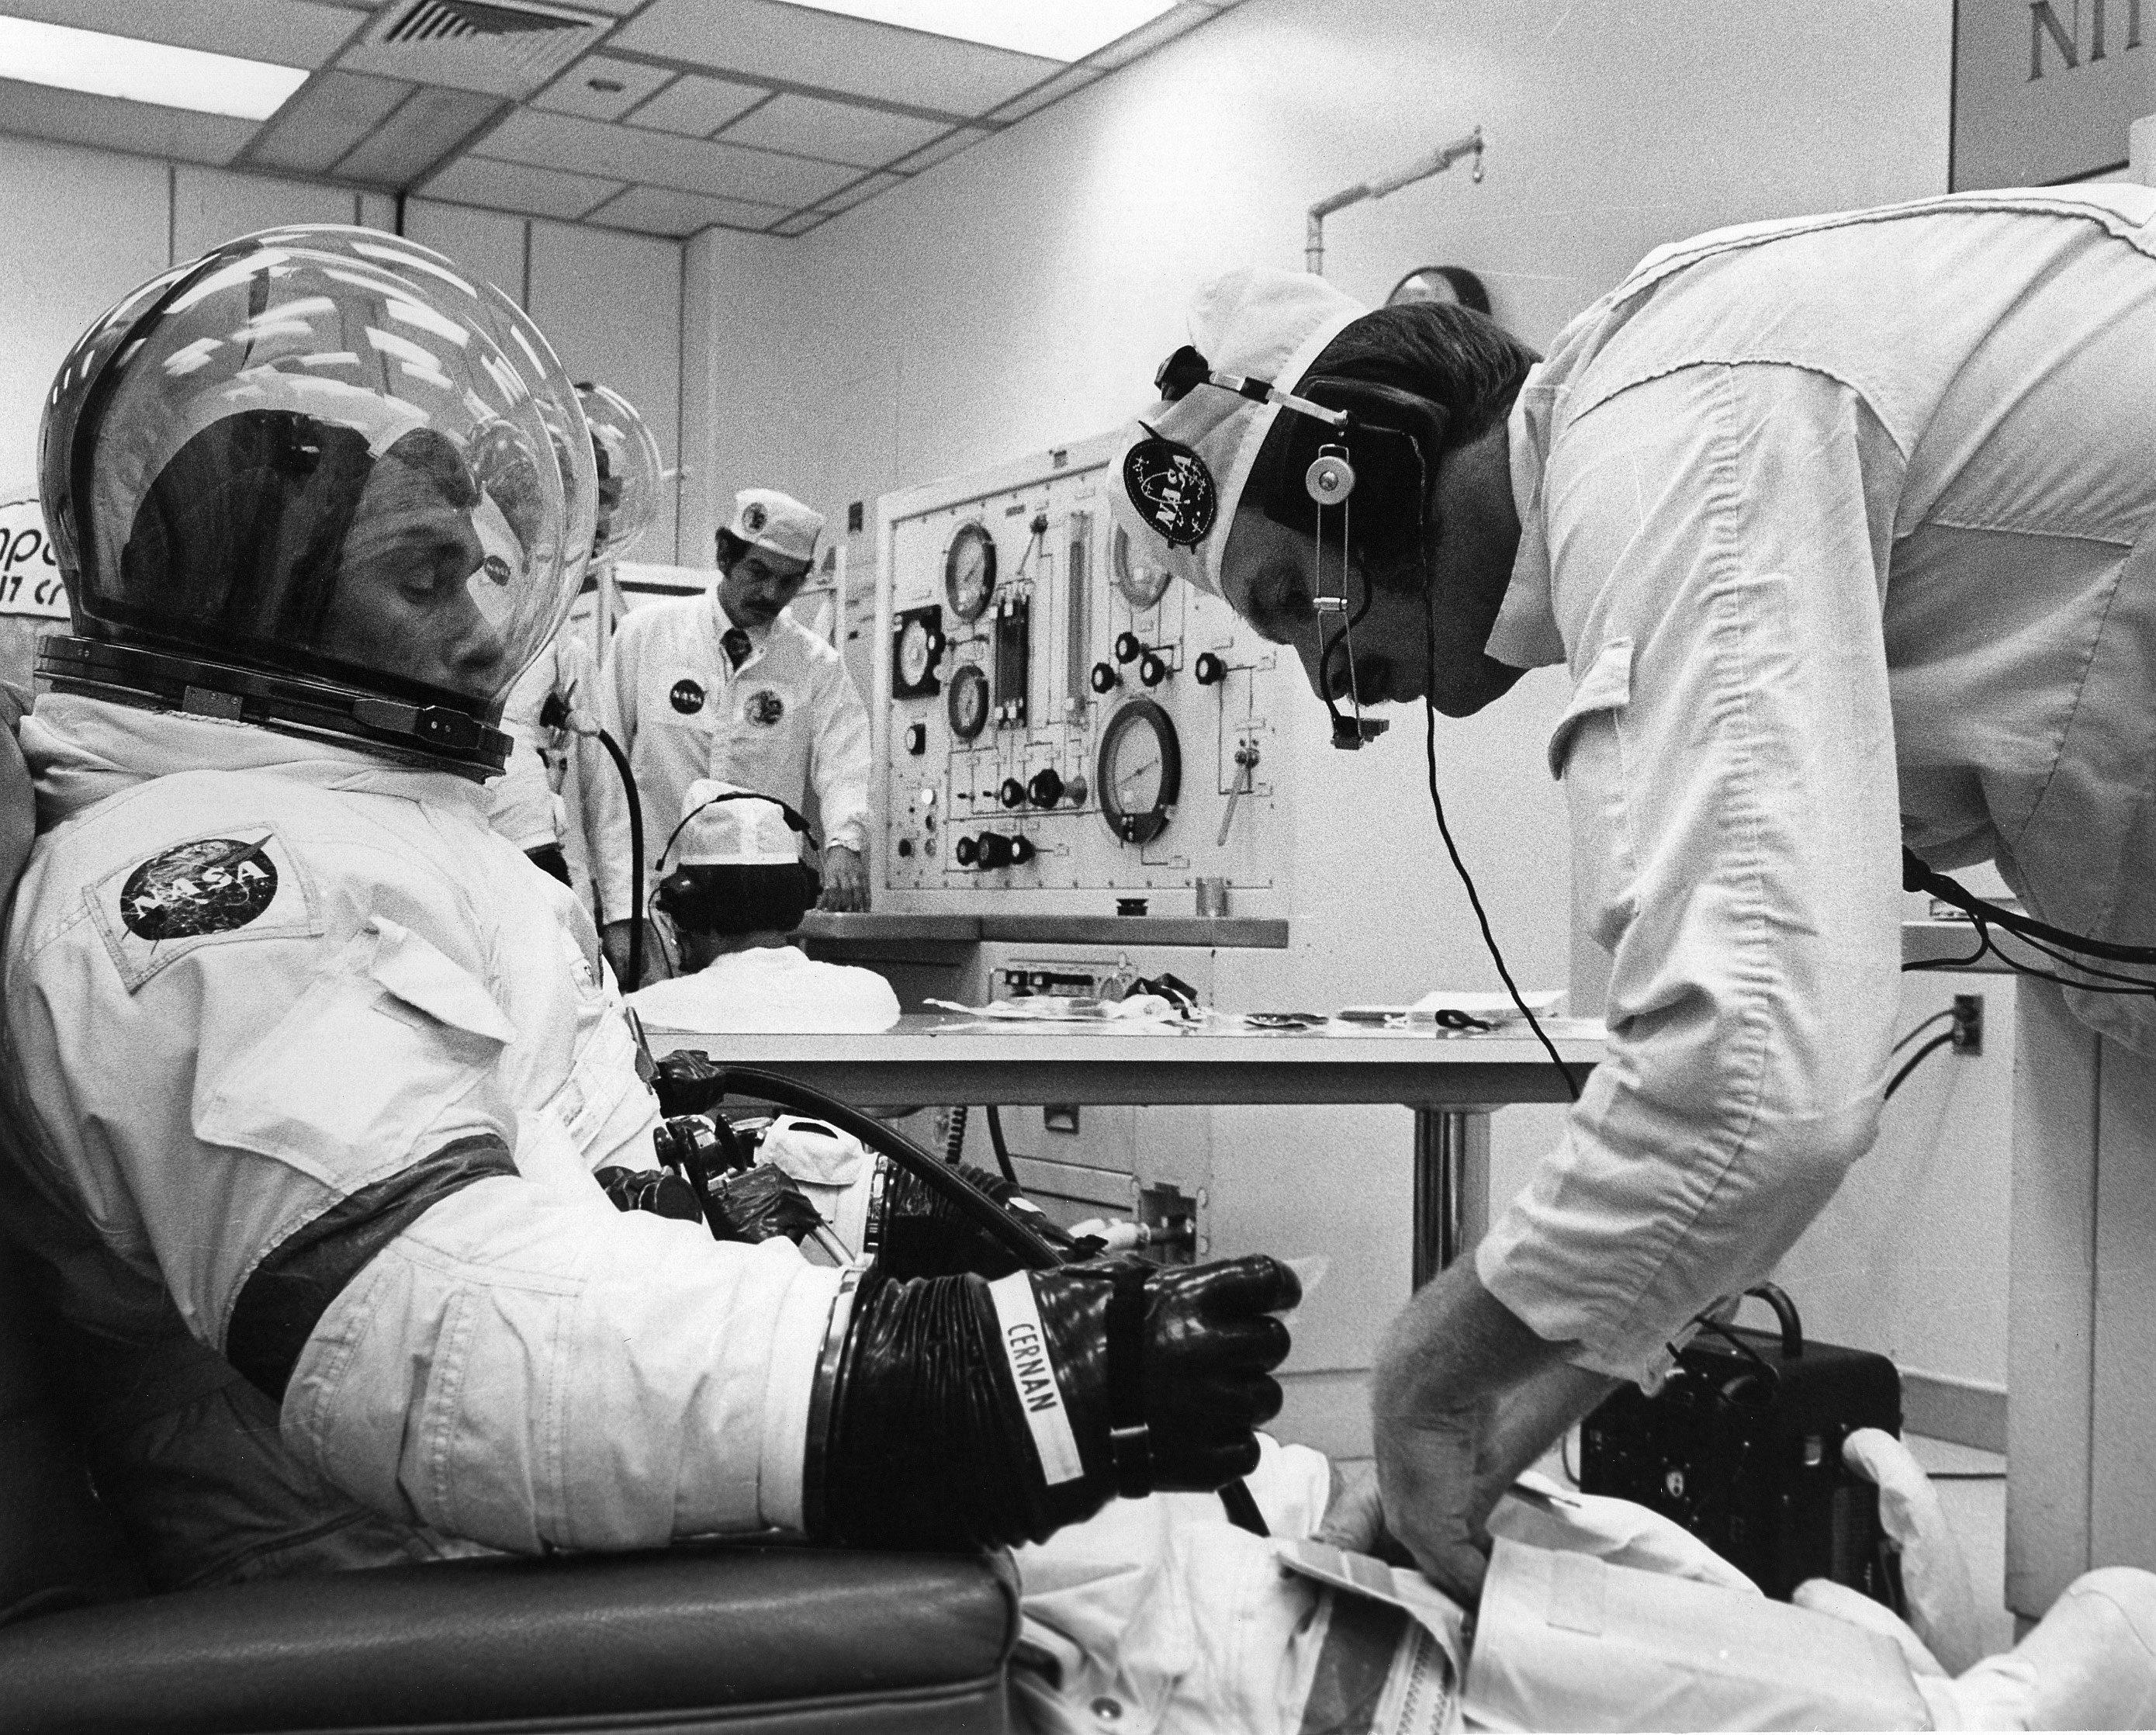 Technicians check Apollo 17 Mission Commander Gene Cernan's spacesuit during preflight preparations before boarding and launch of the Saturn V rocket. Credit: NASA